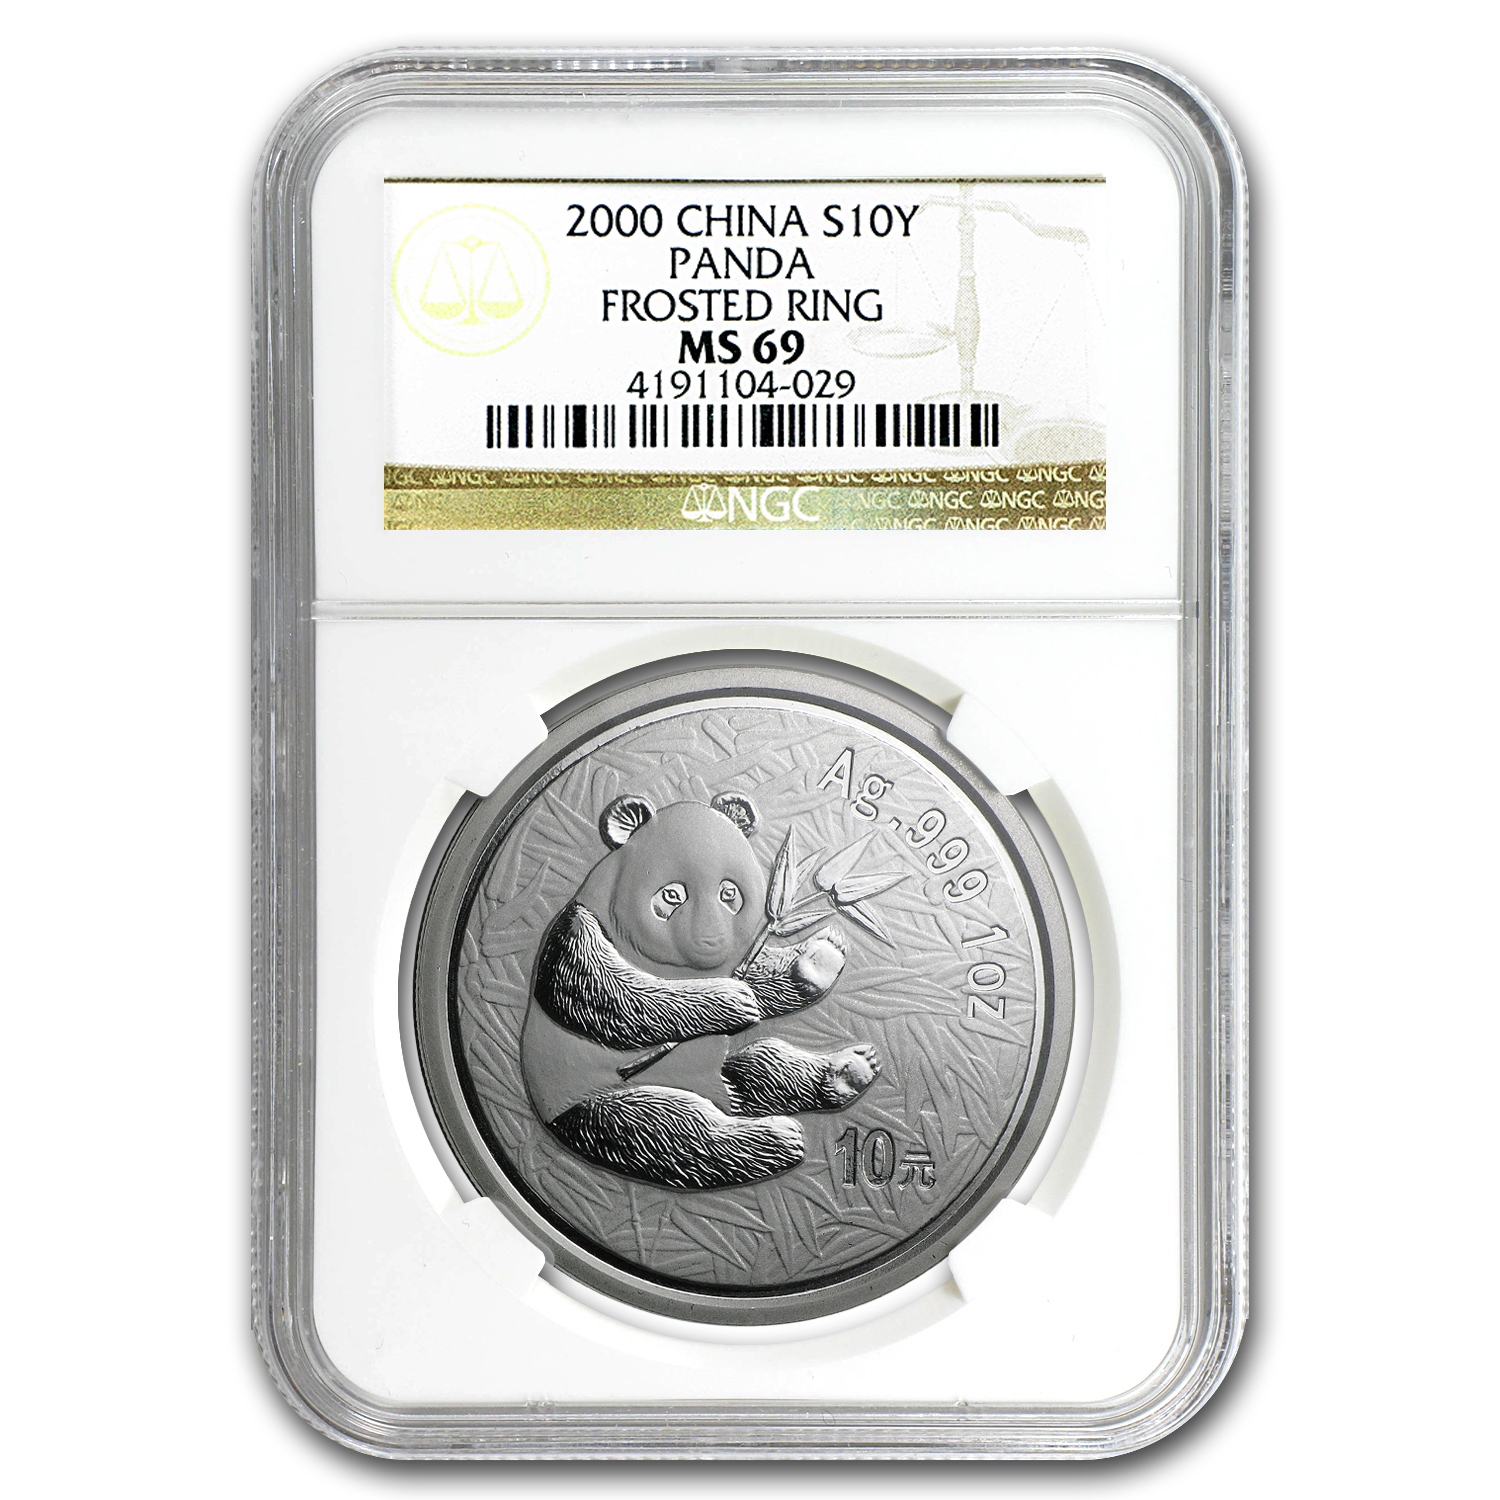 2000 China 1 oz Silver Panda MS-69 NGC (Frosted Ring)